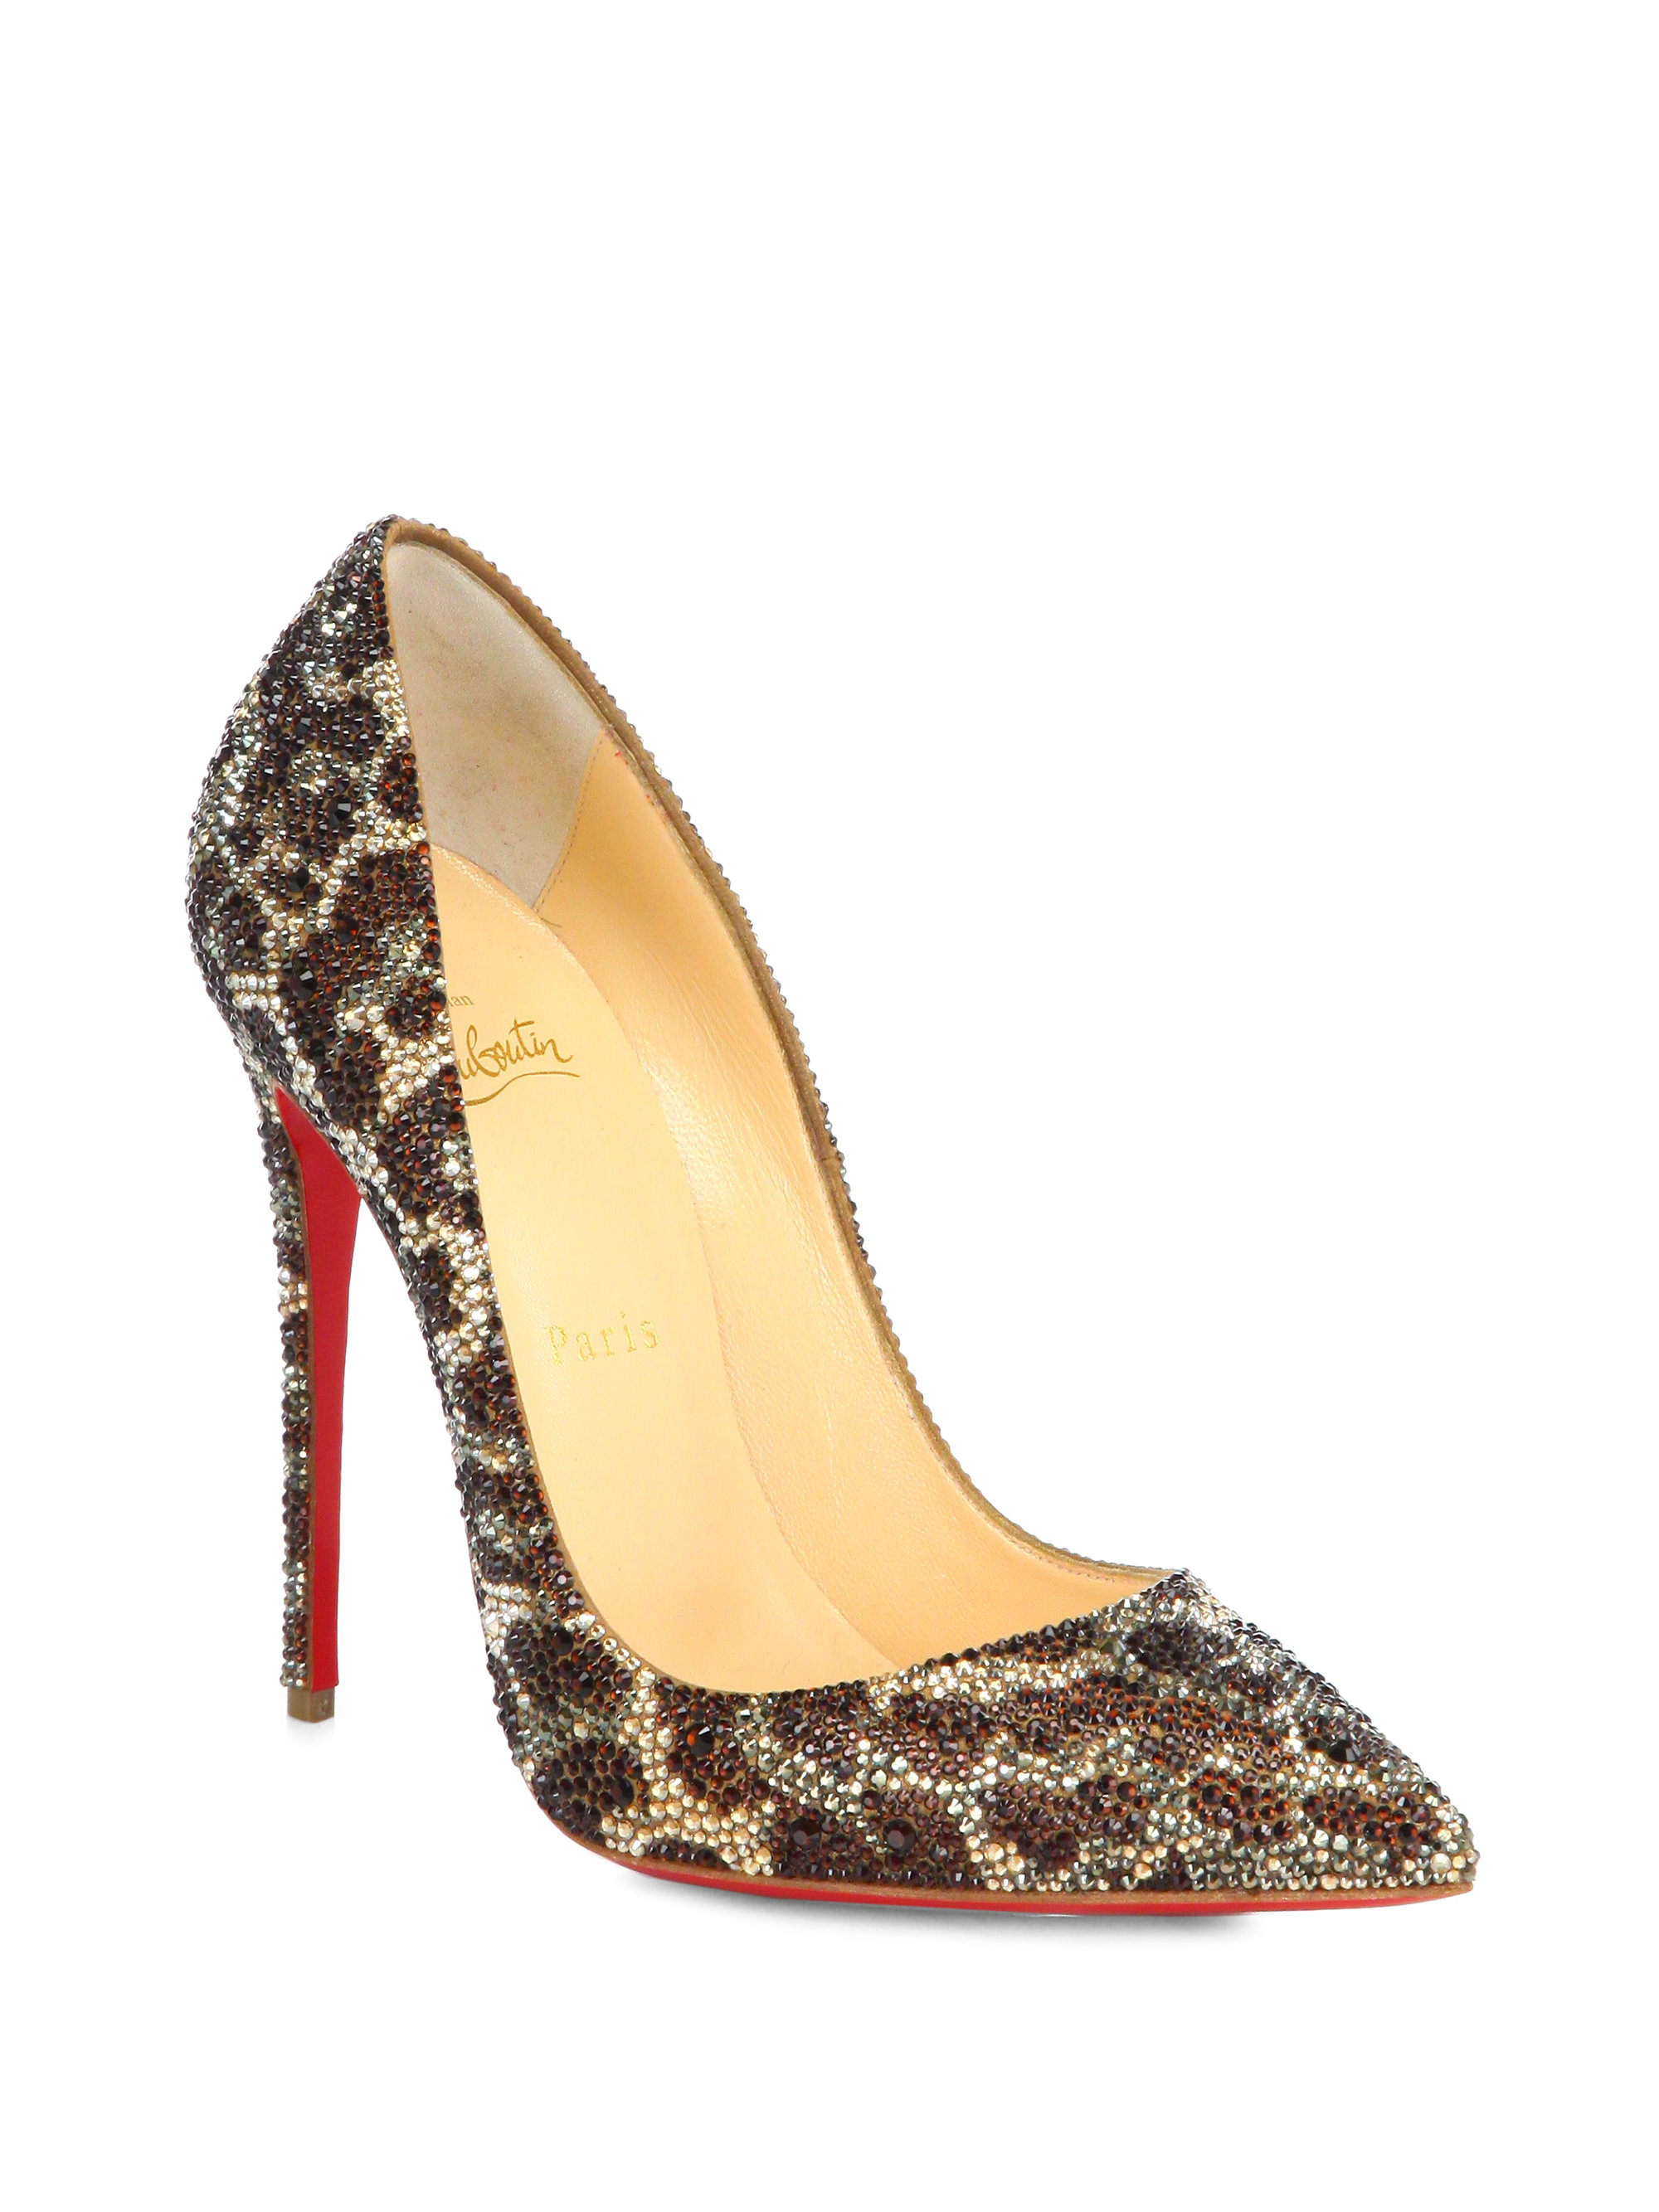 Christian louboutin So Kate Leopard-Print Crystal Pumps